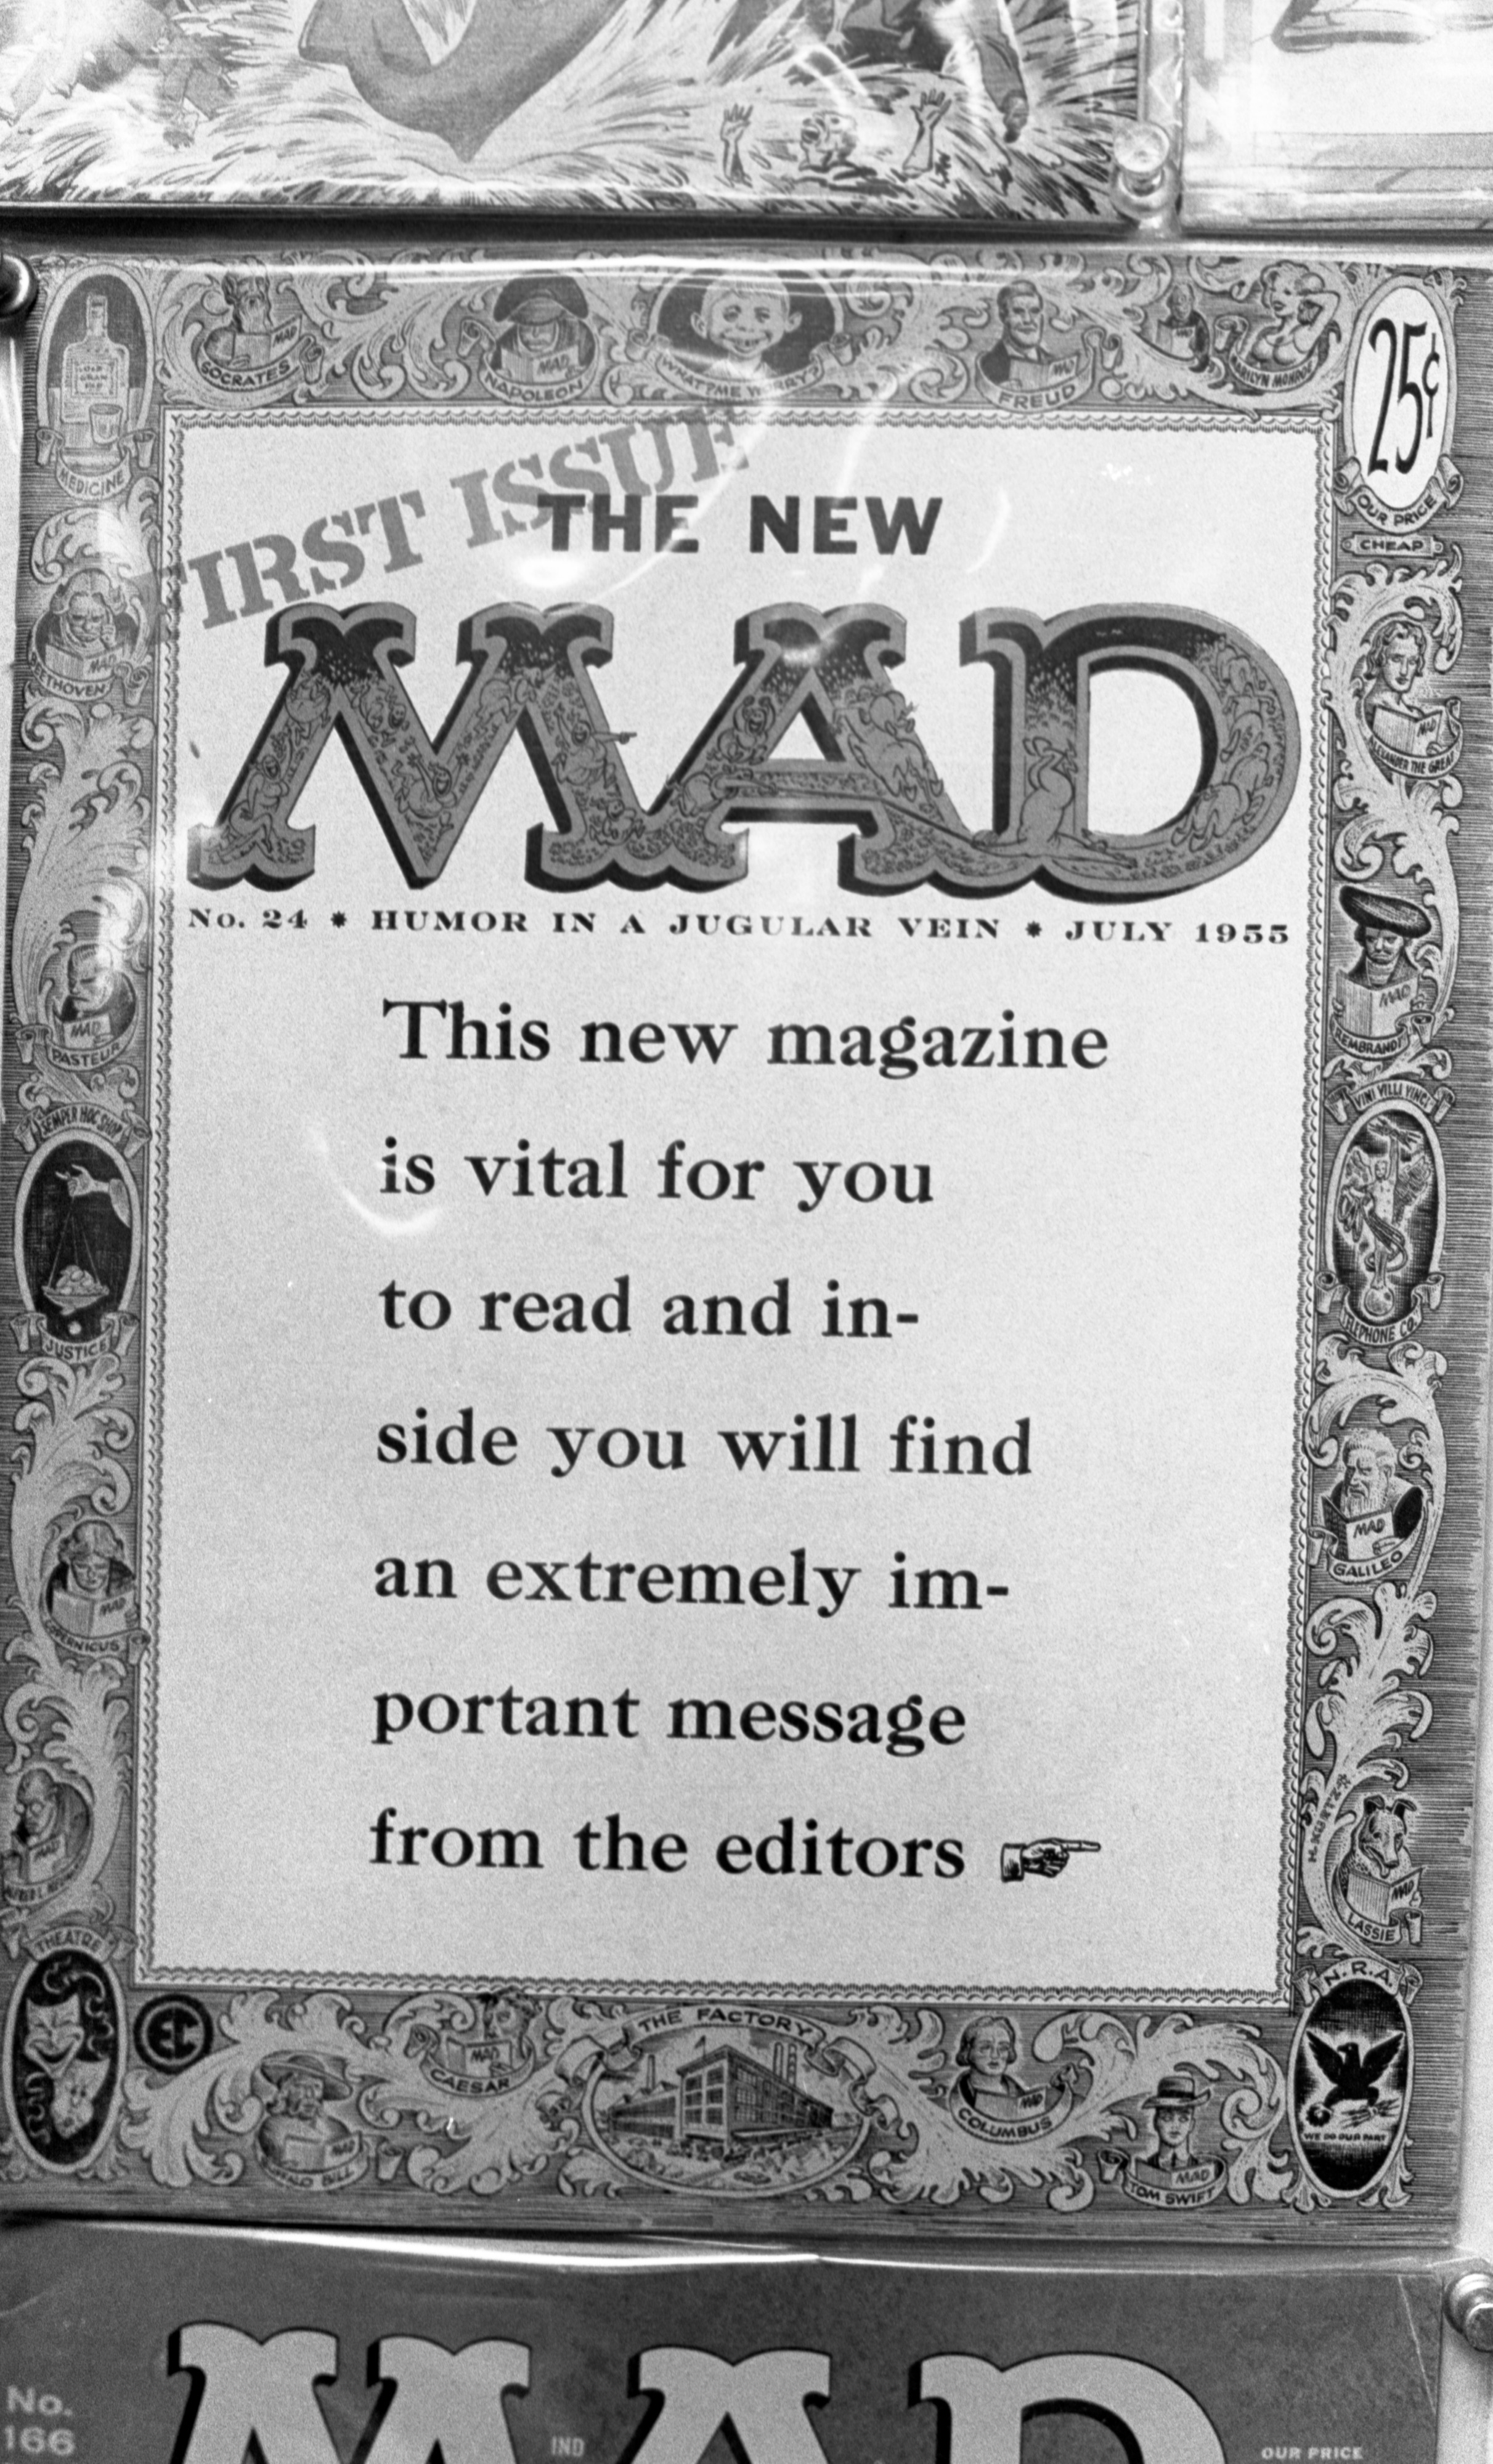 MAD Magazine (July 1955, Volume 1, No. 24) On Display At The Eye Of Agamotto, September 1978 image